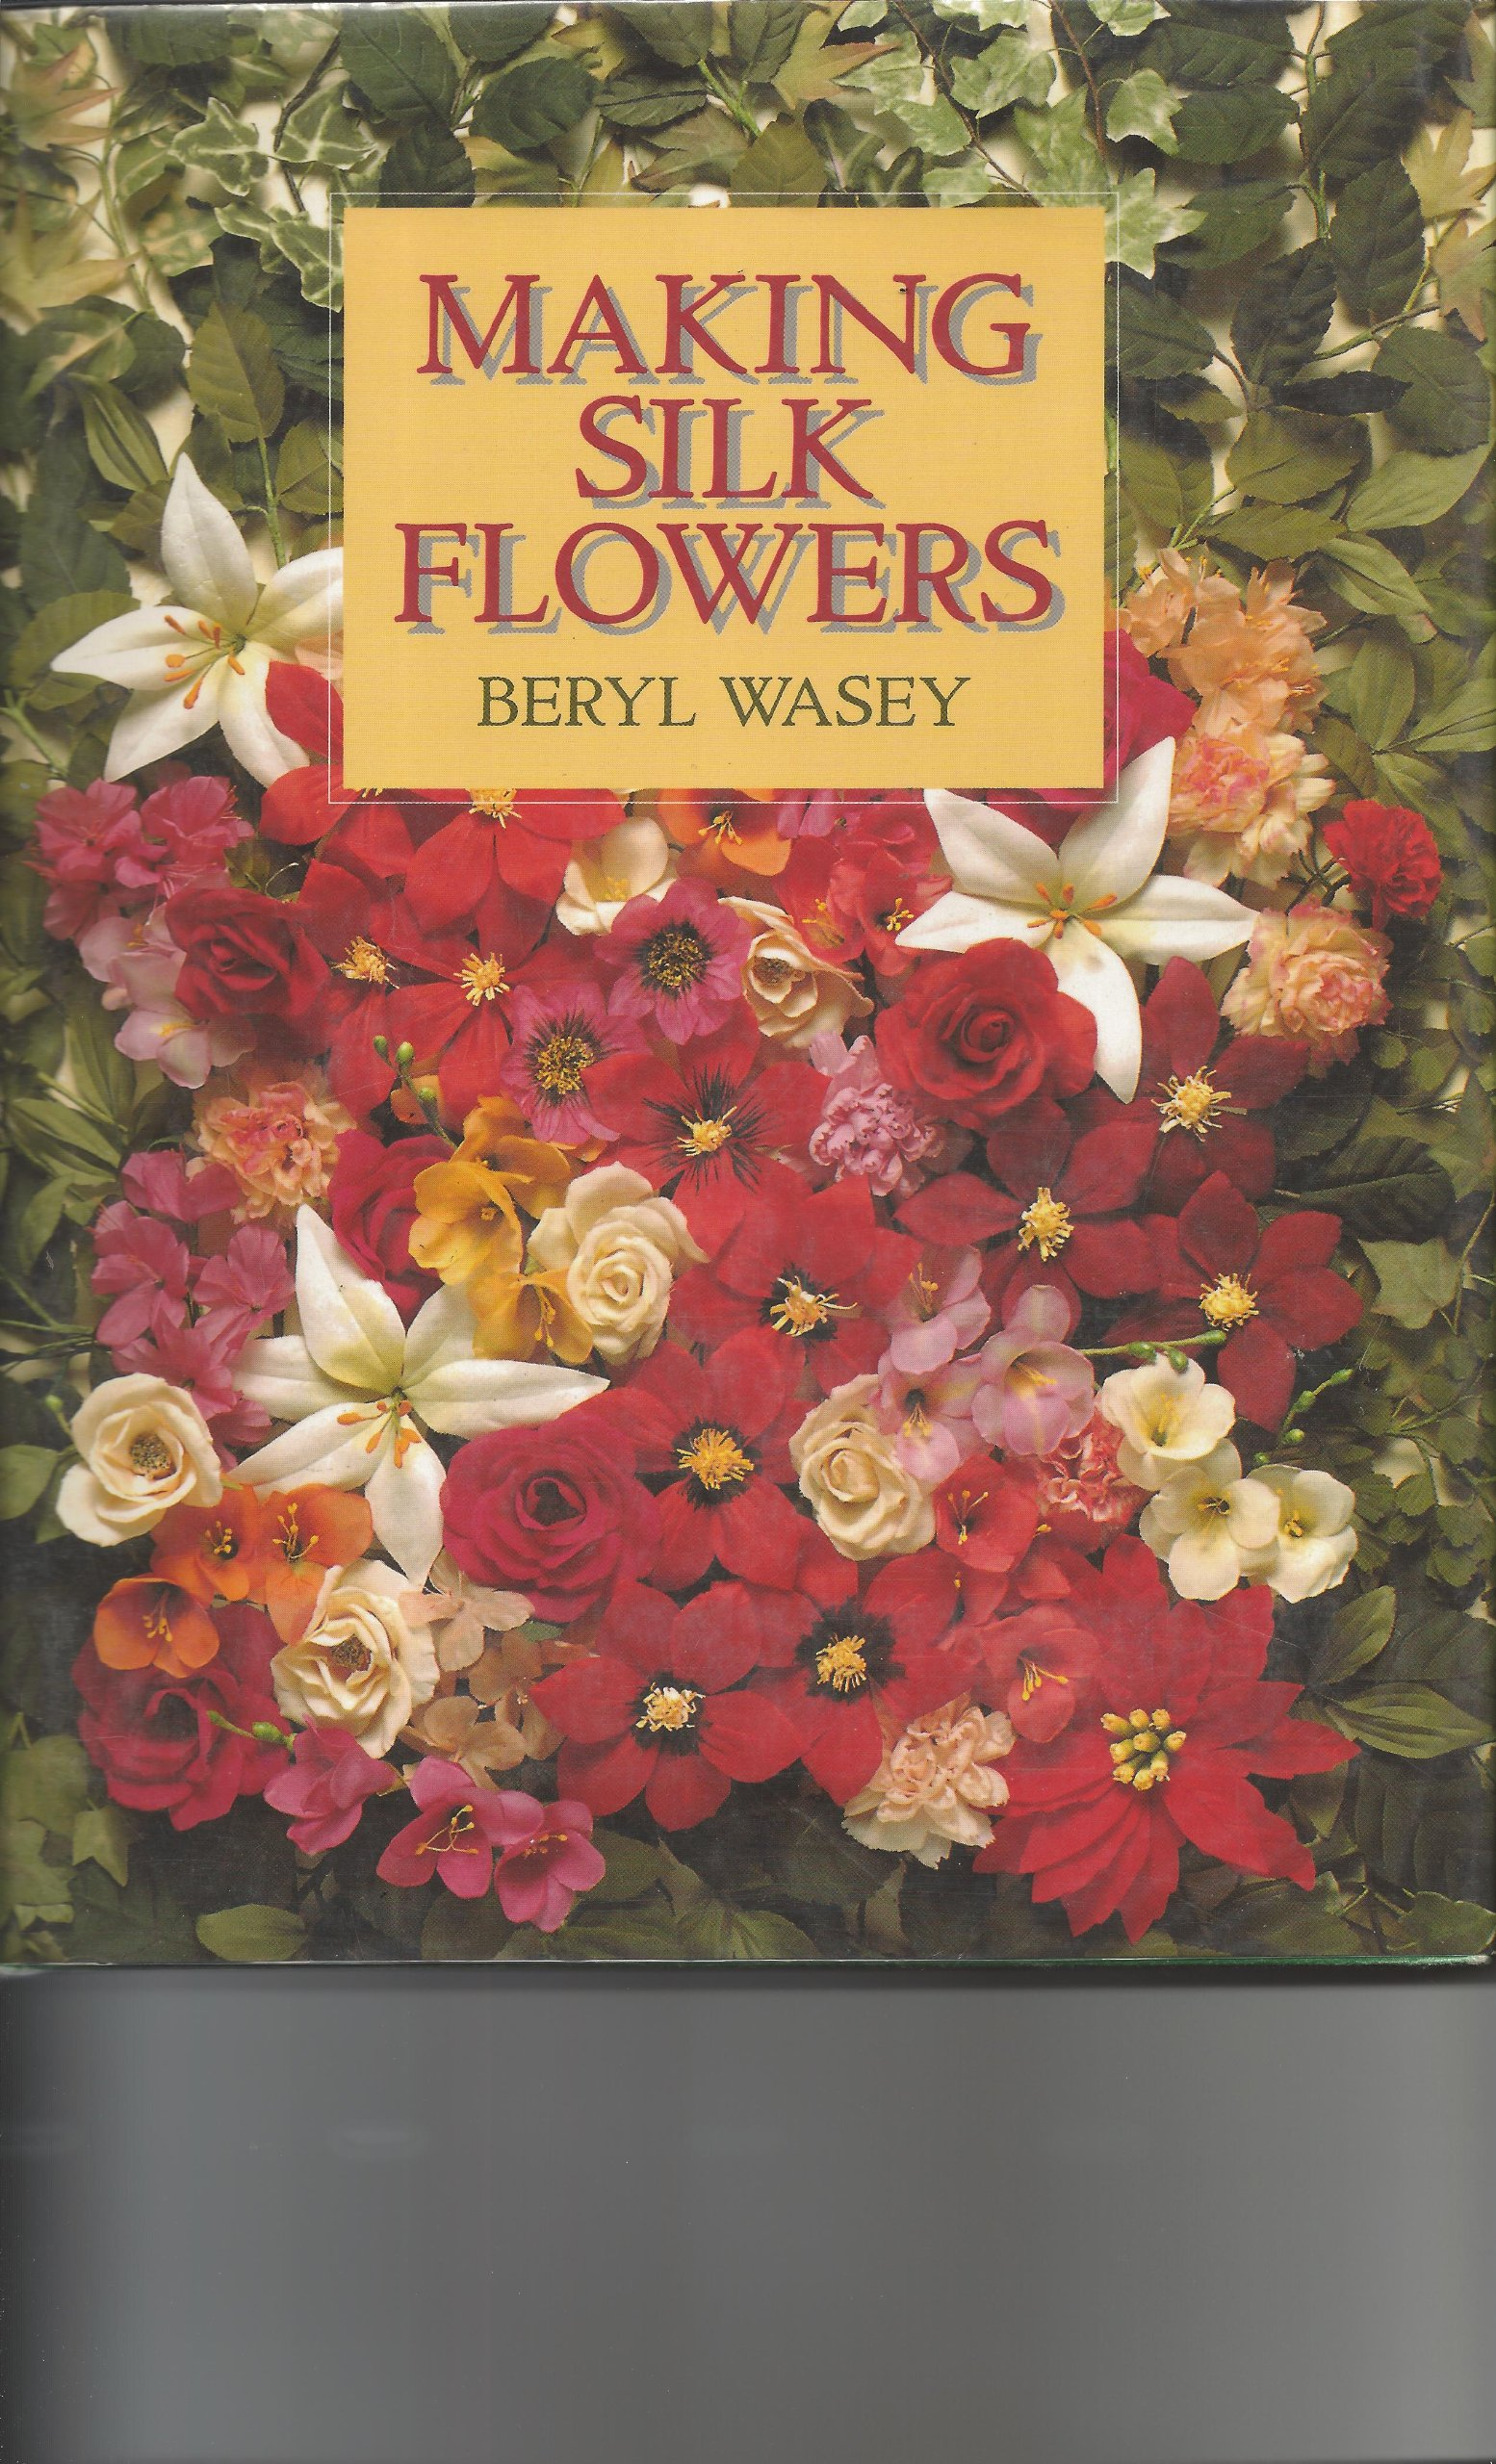 Making Silk Flowers: Beryl Wasey: 9780713467215: Amazon.com: Books